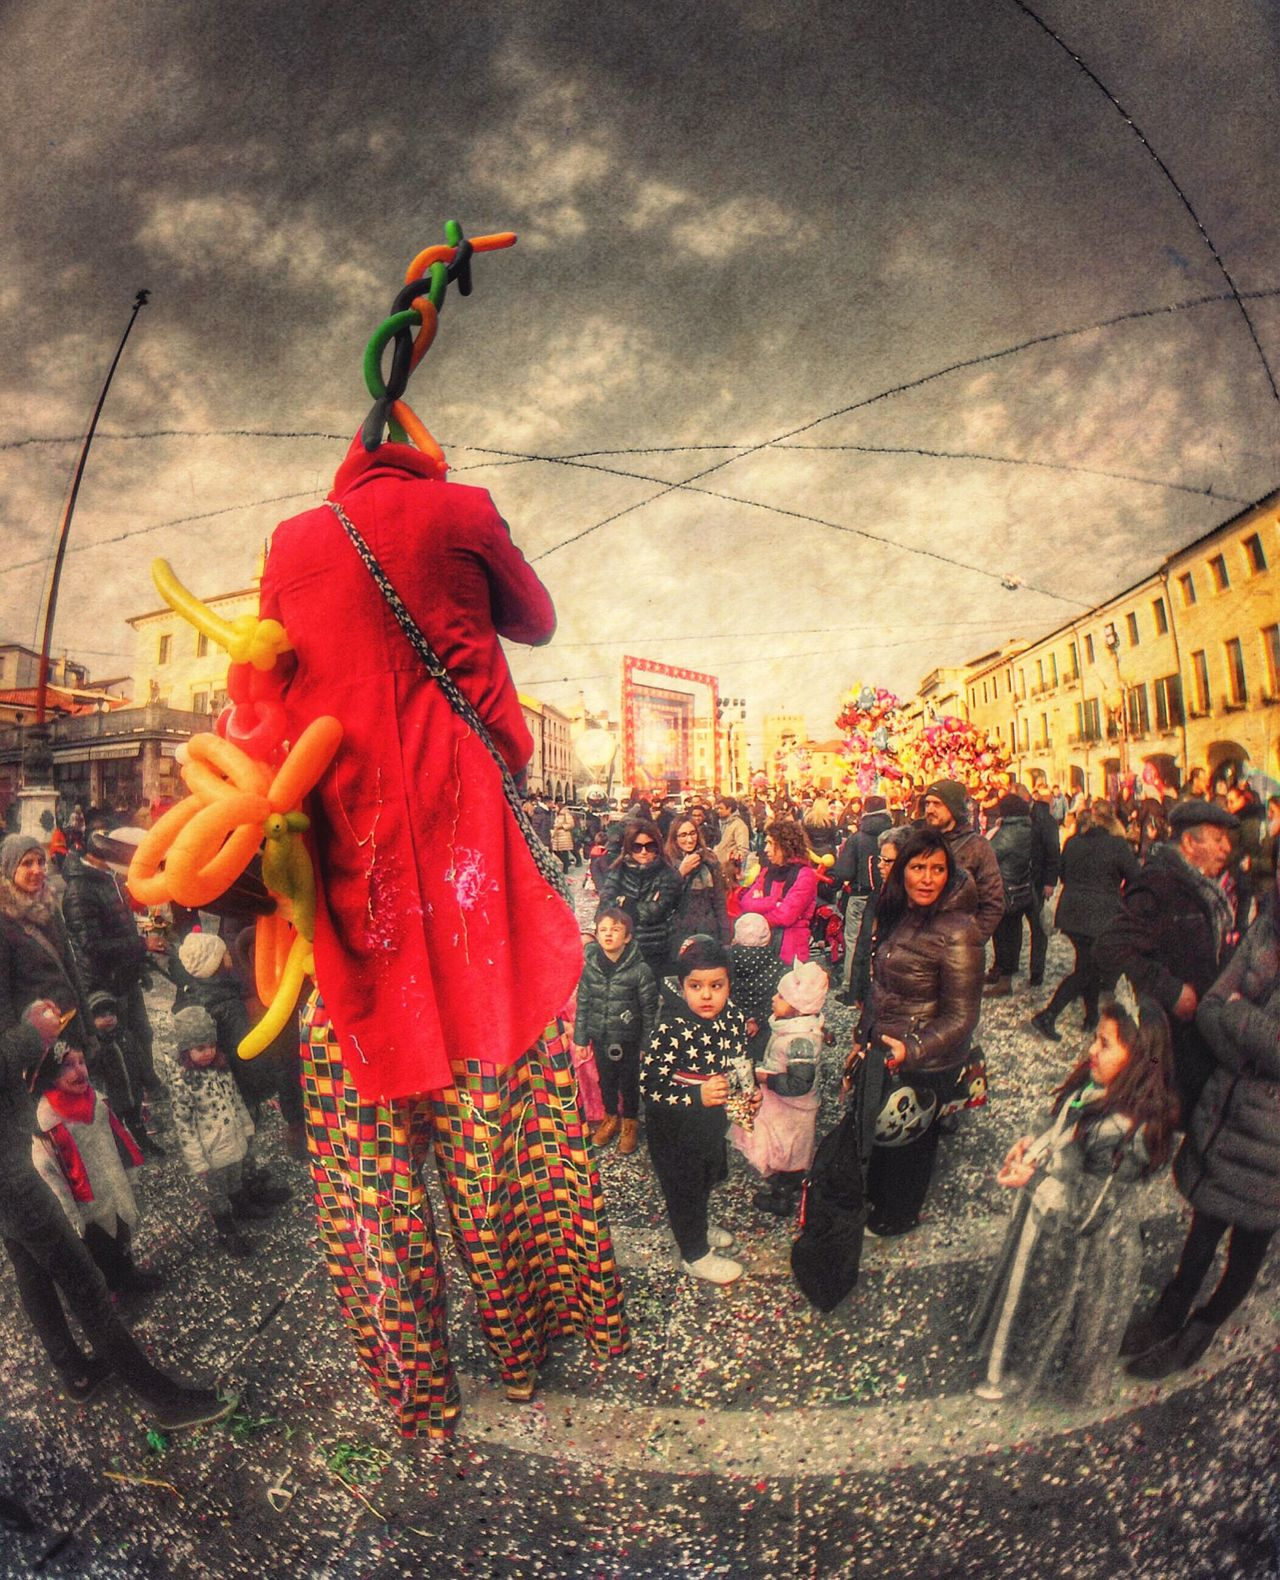 Traditional Festival City Outdoors Celebration Large Group Of People People Day Adult Carneval